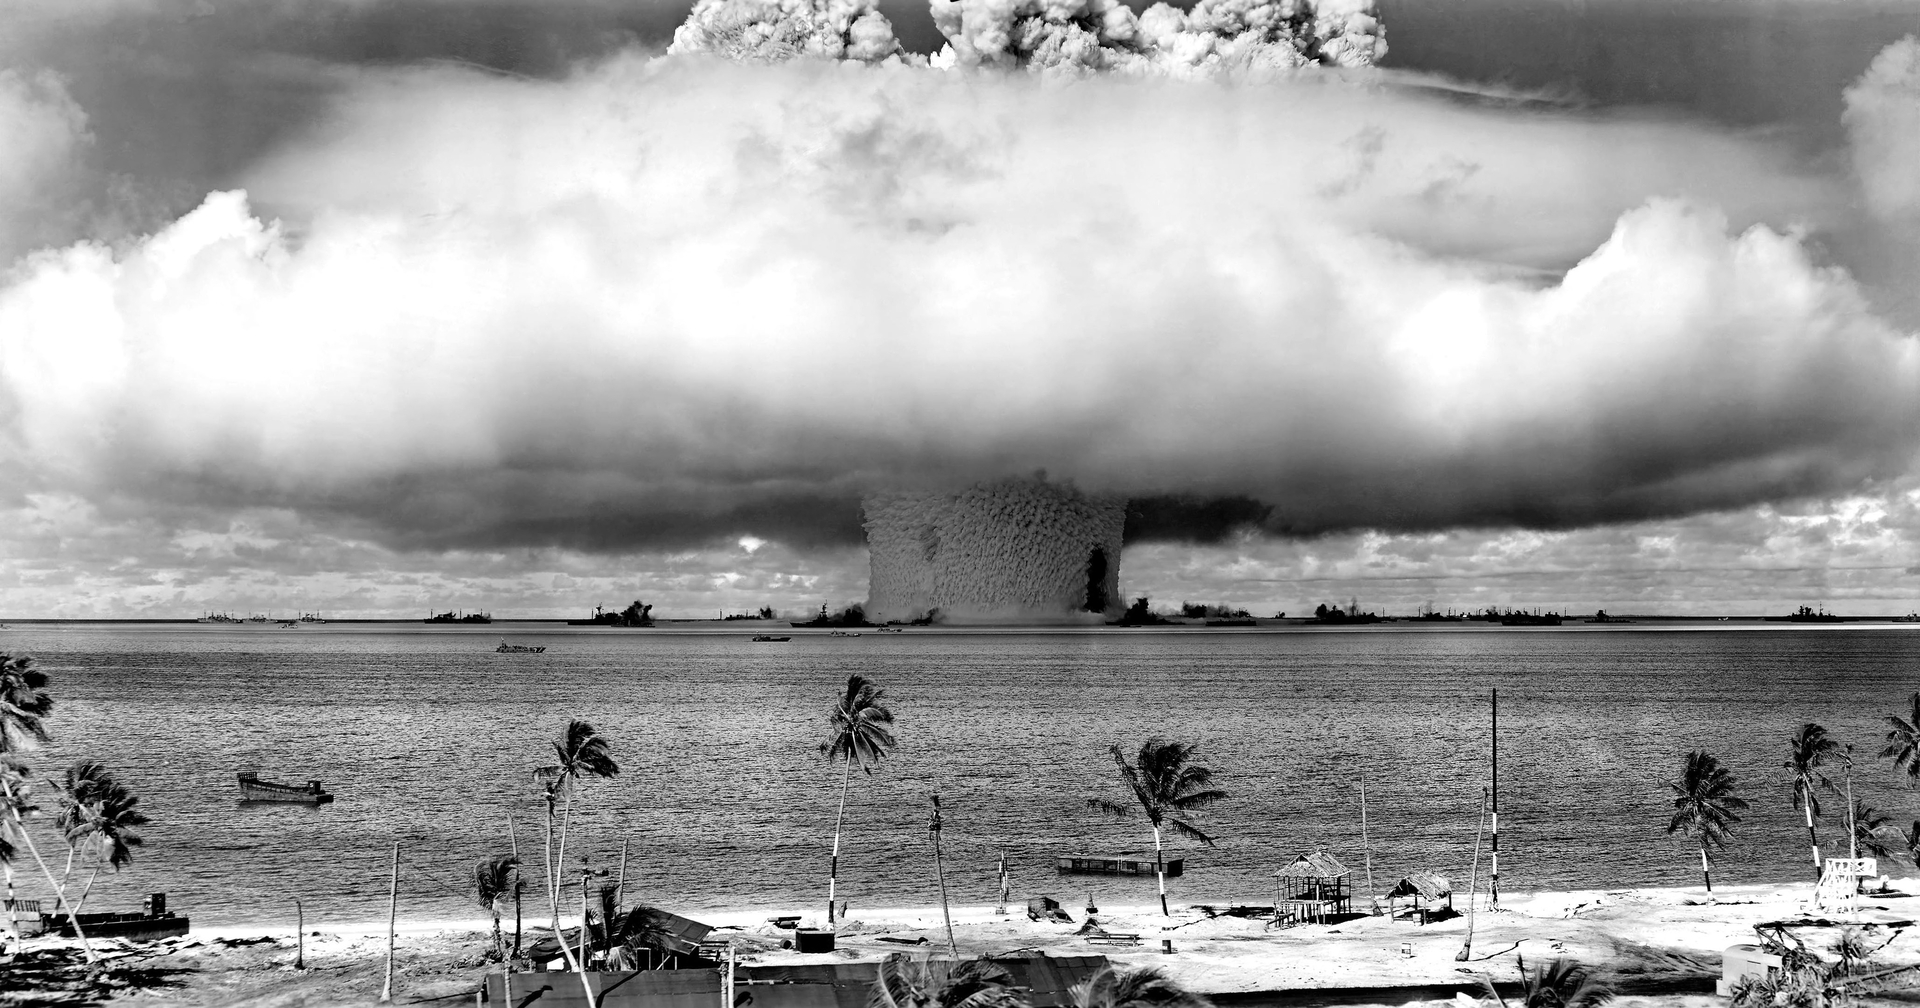 Nuclear isotopes on Marshall Islands up to 1000 times higher than Chernobyl or Fukushima